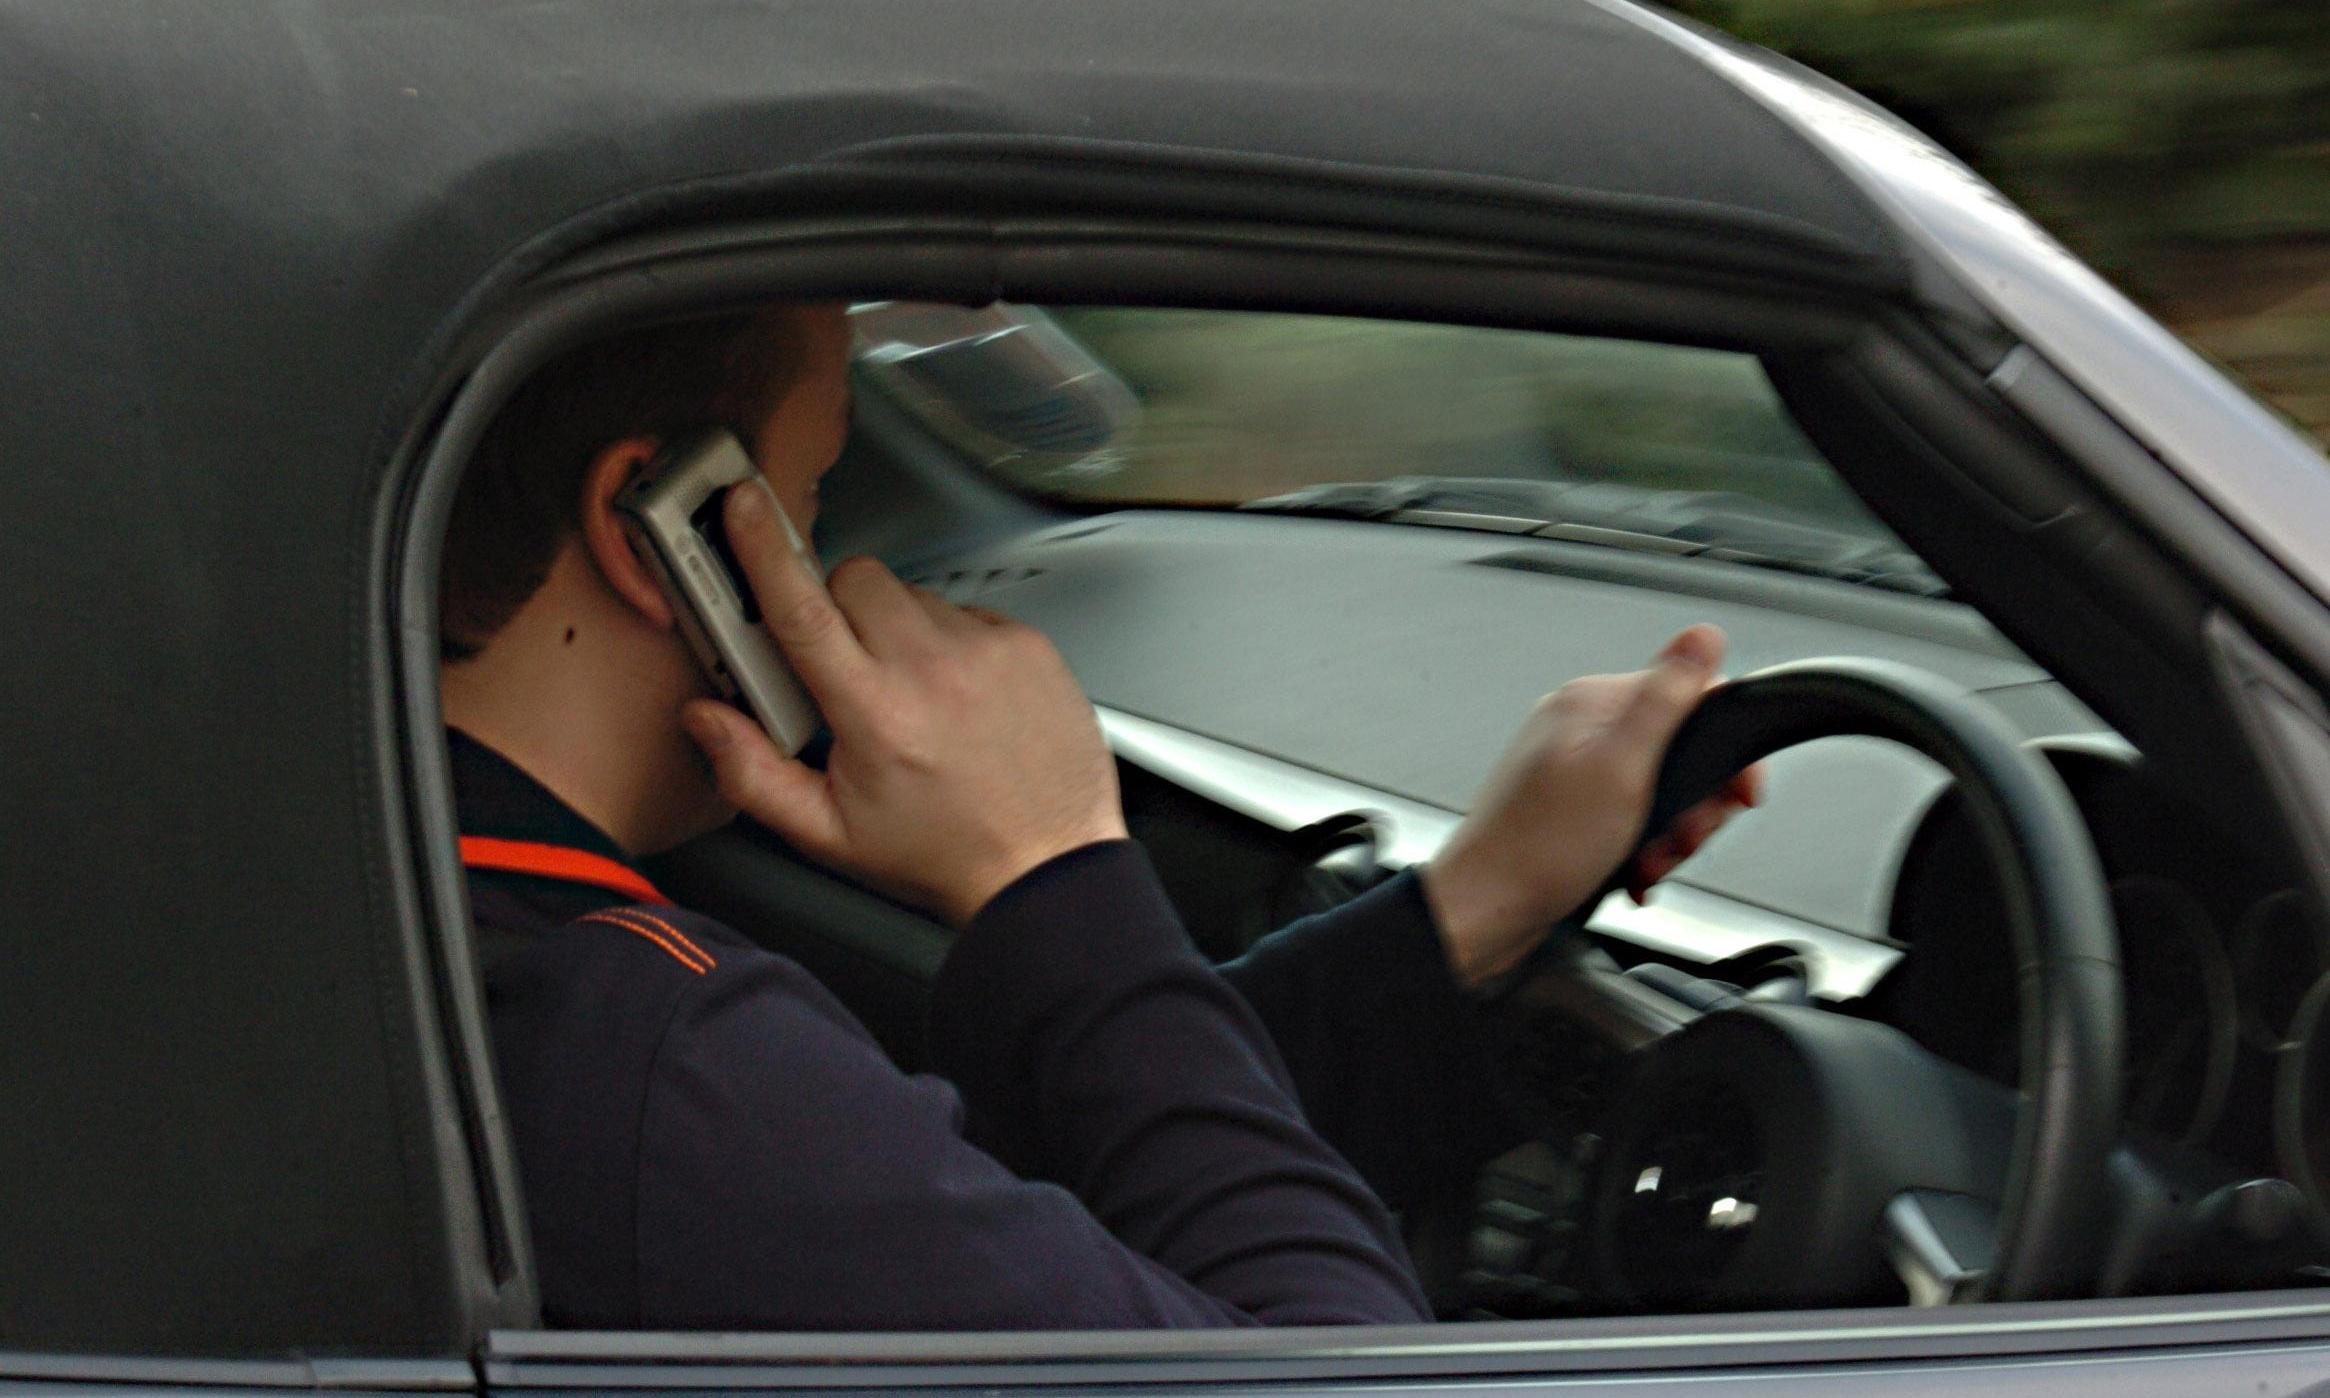 Ban hands-free phones in cars after rise in road deaths, MPs suggest